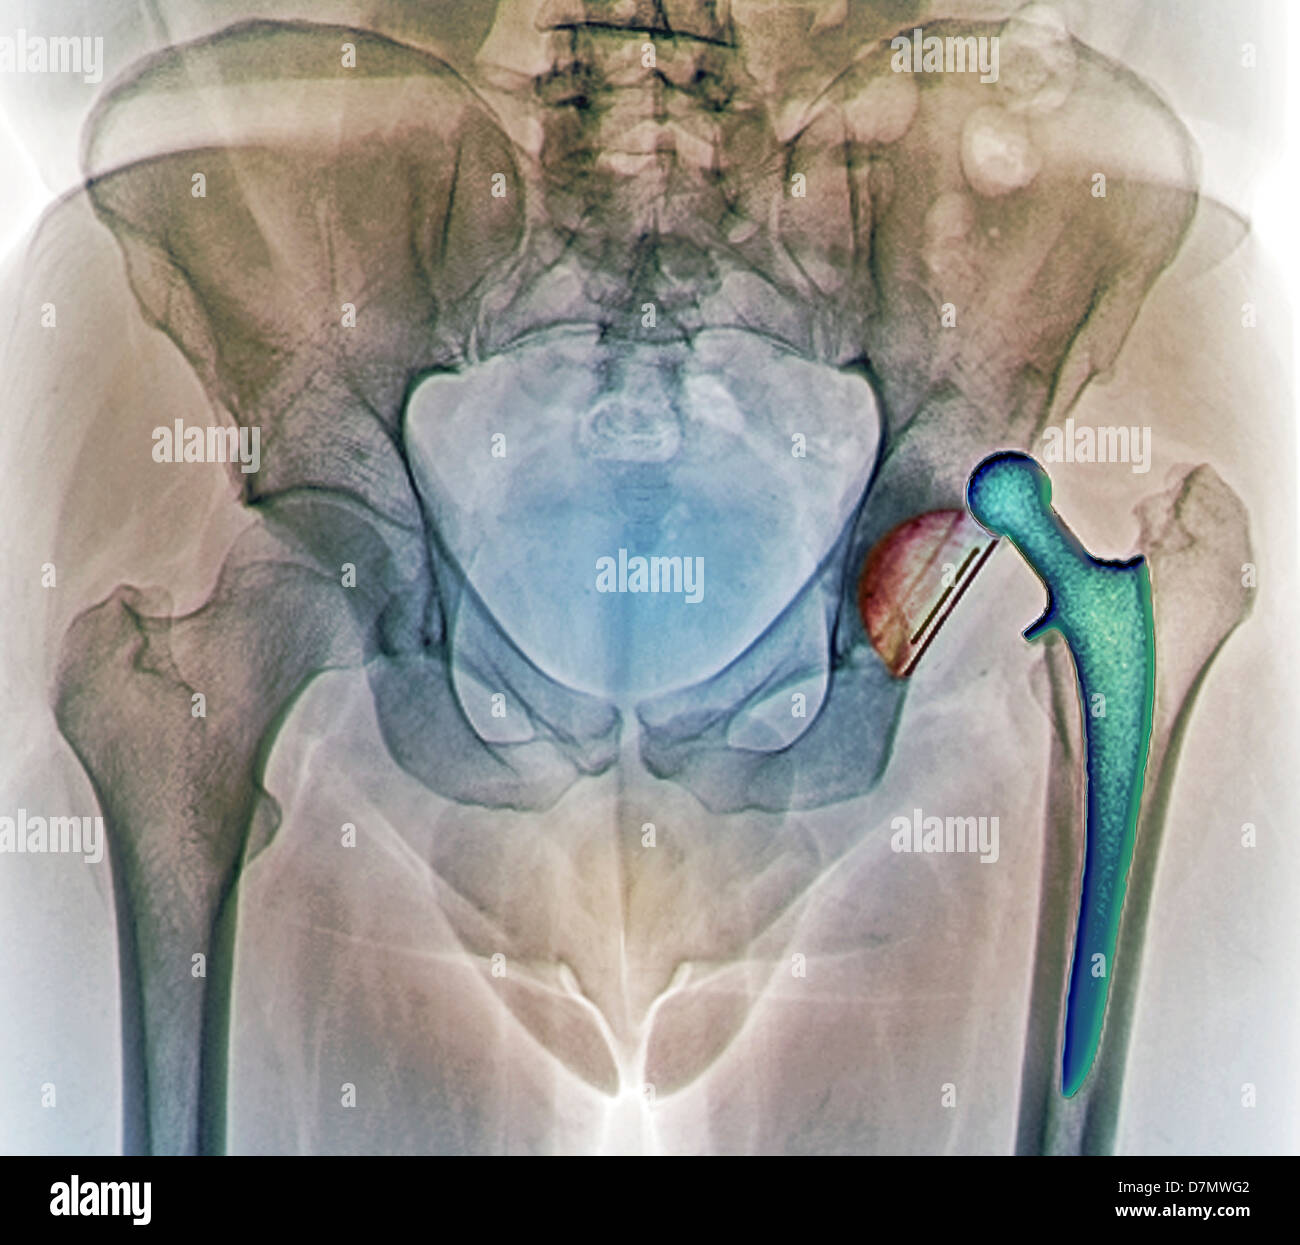 Dislocated hip replacement, X-ray - Stock Image